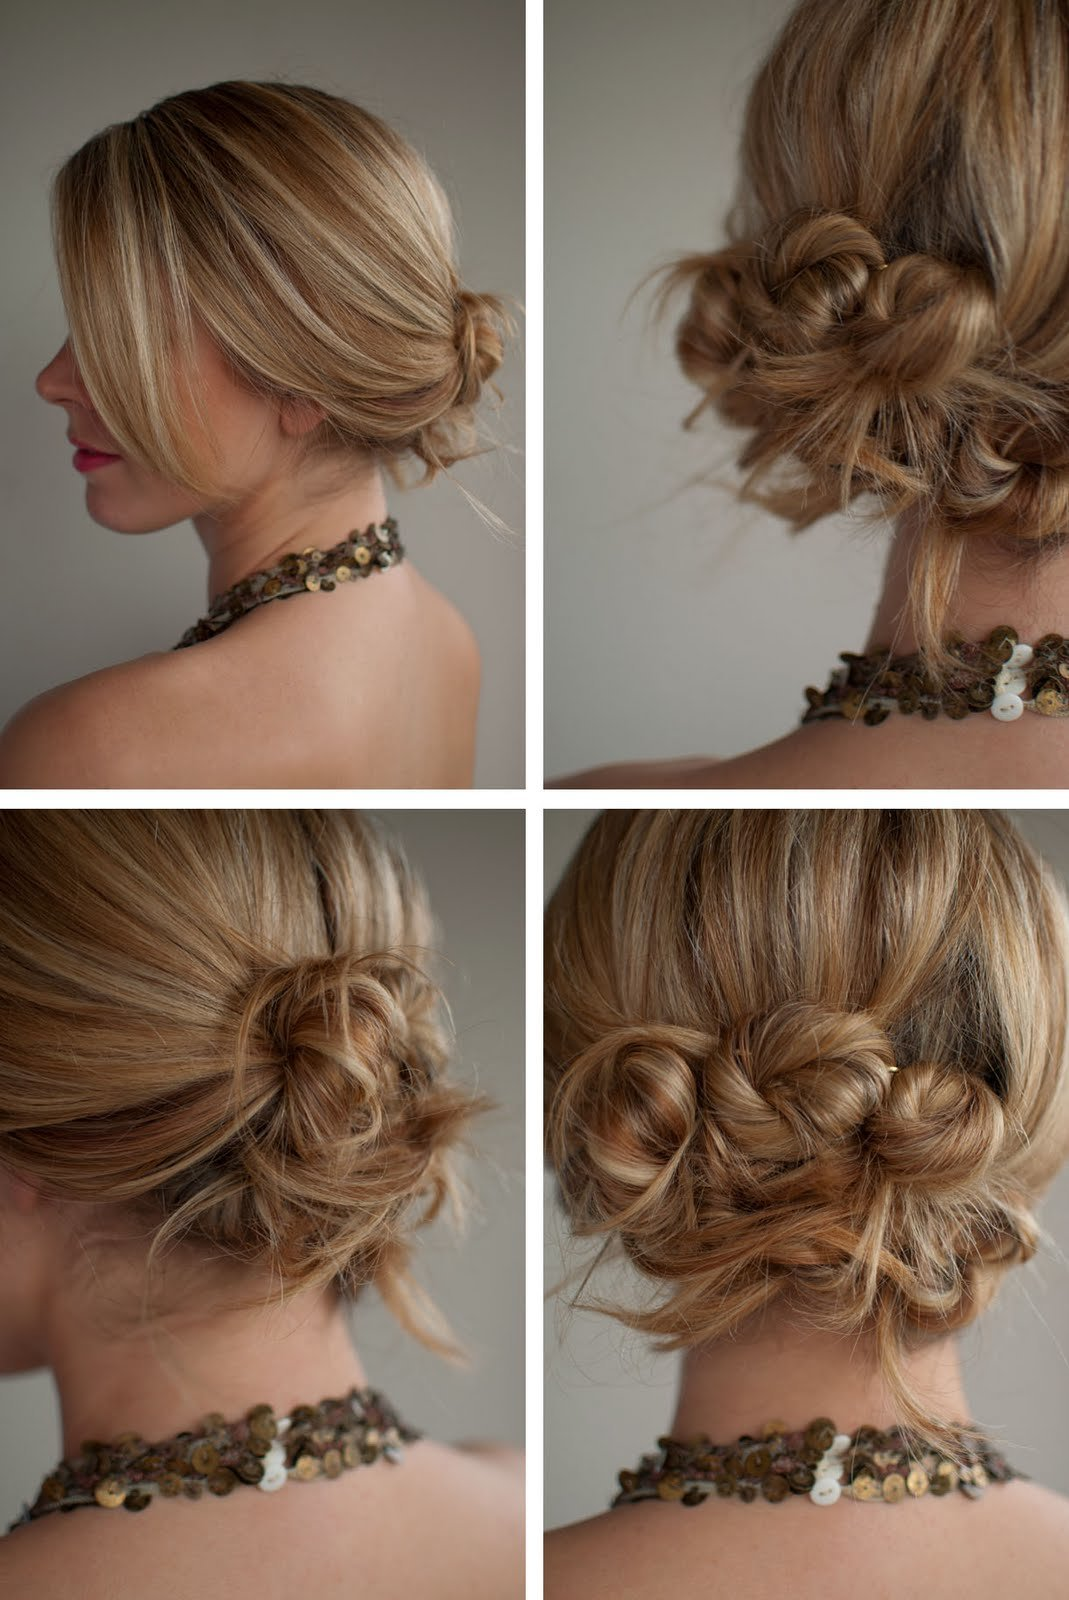 The Best 30 Days Of Twist Pin Hairstyles – Day 19 Hair Romance Pictures